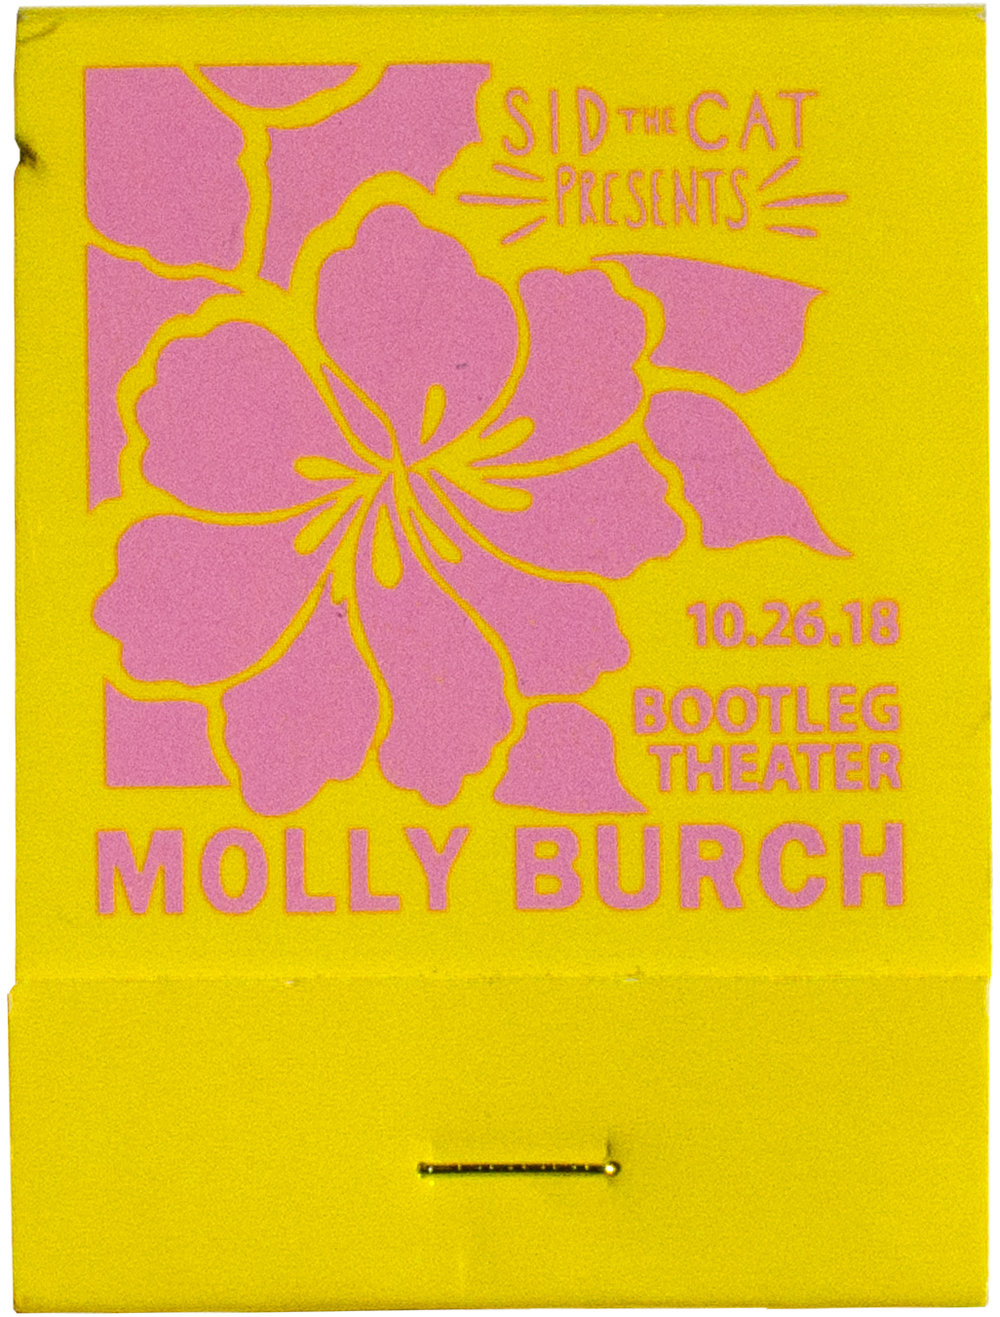 2018.10.26 Molly Burch.jpg